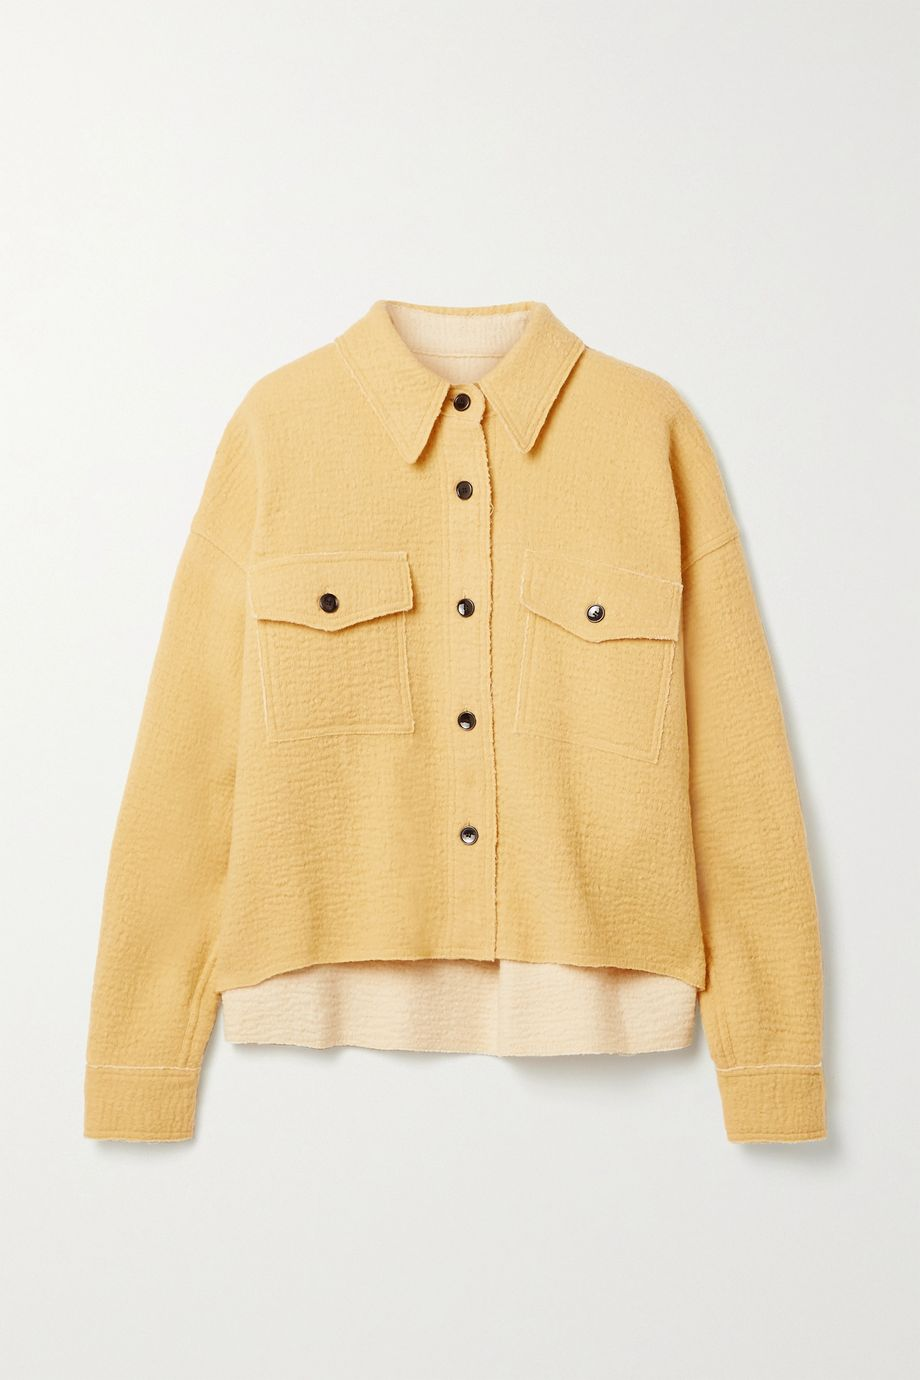 Isabel Marant Dennao wool jacket